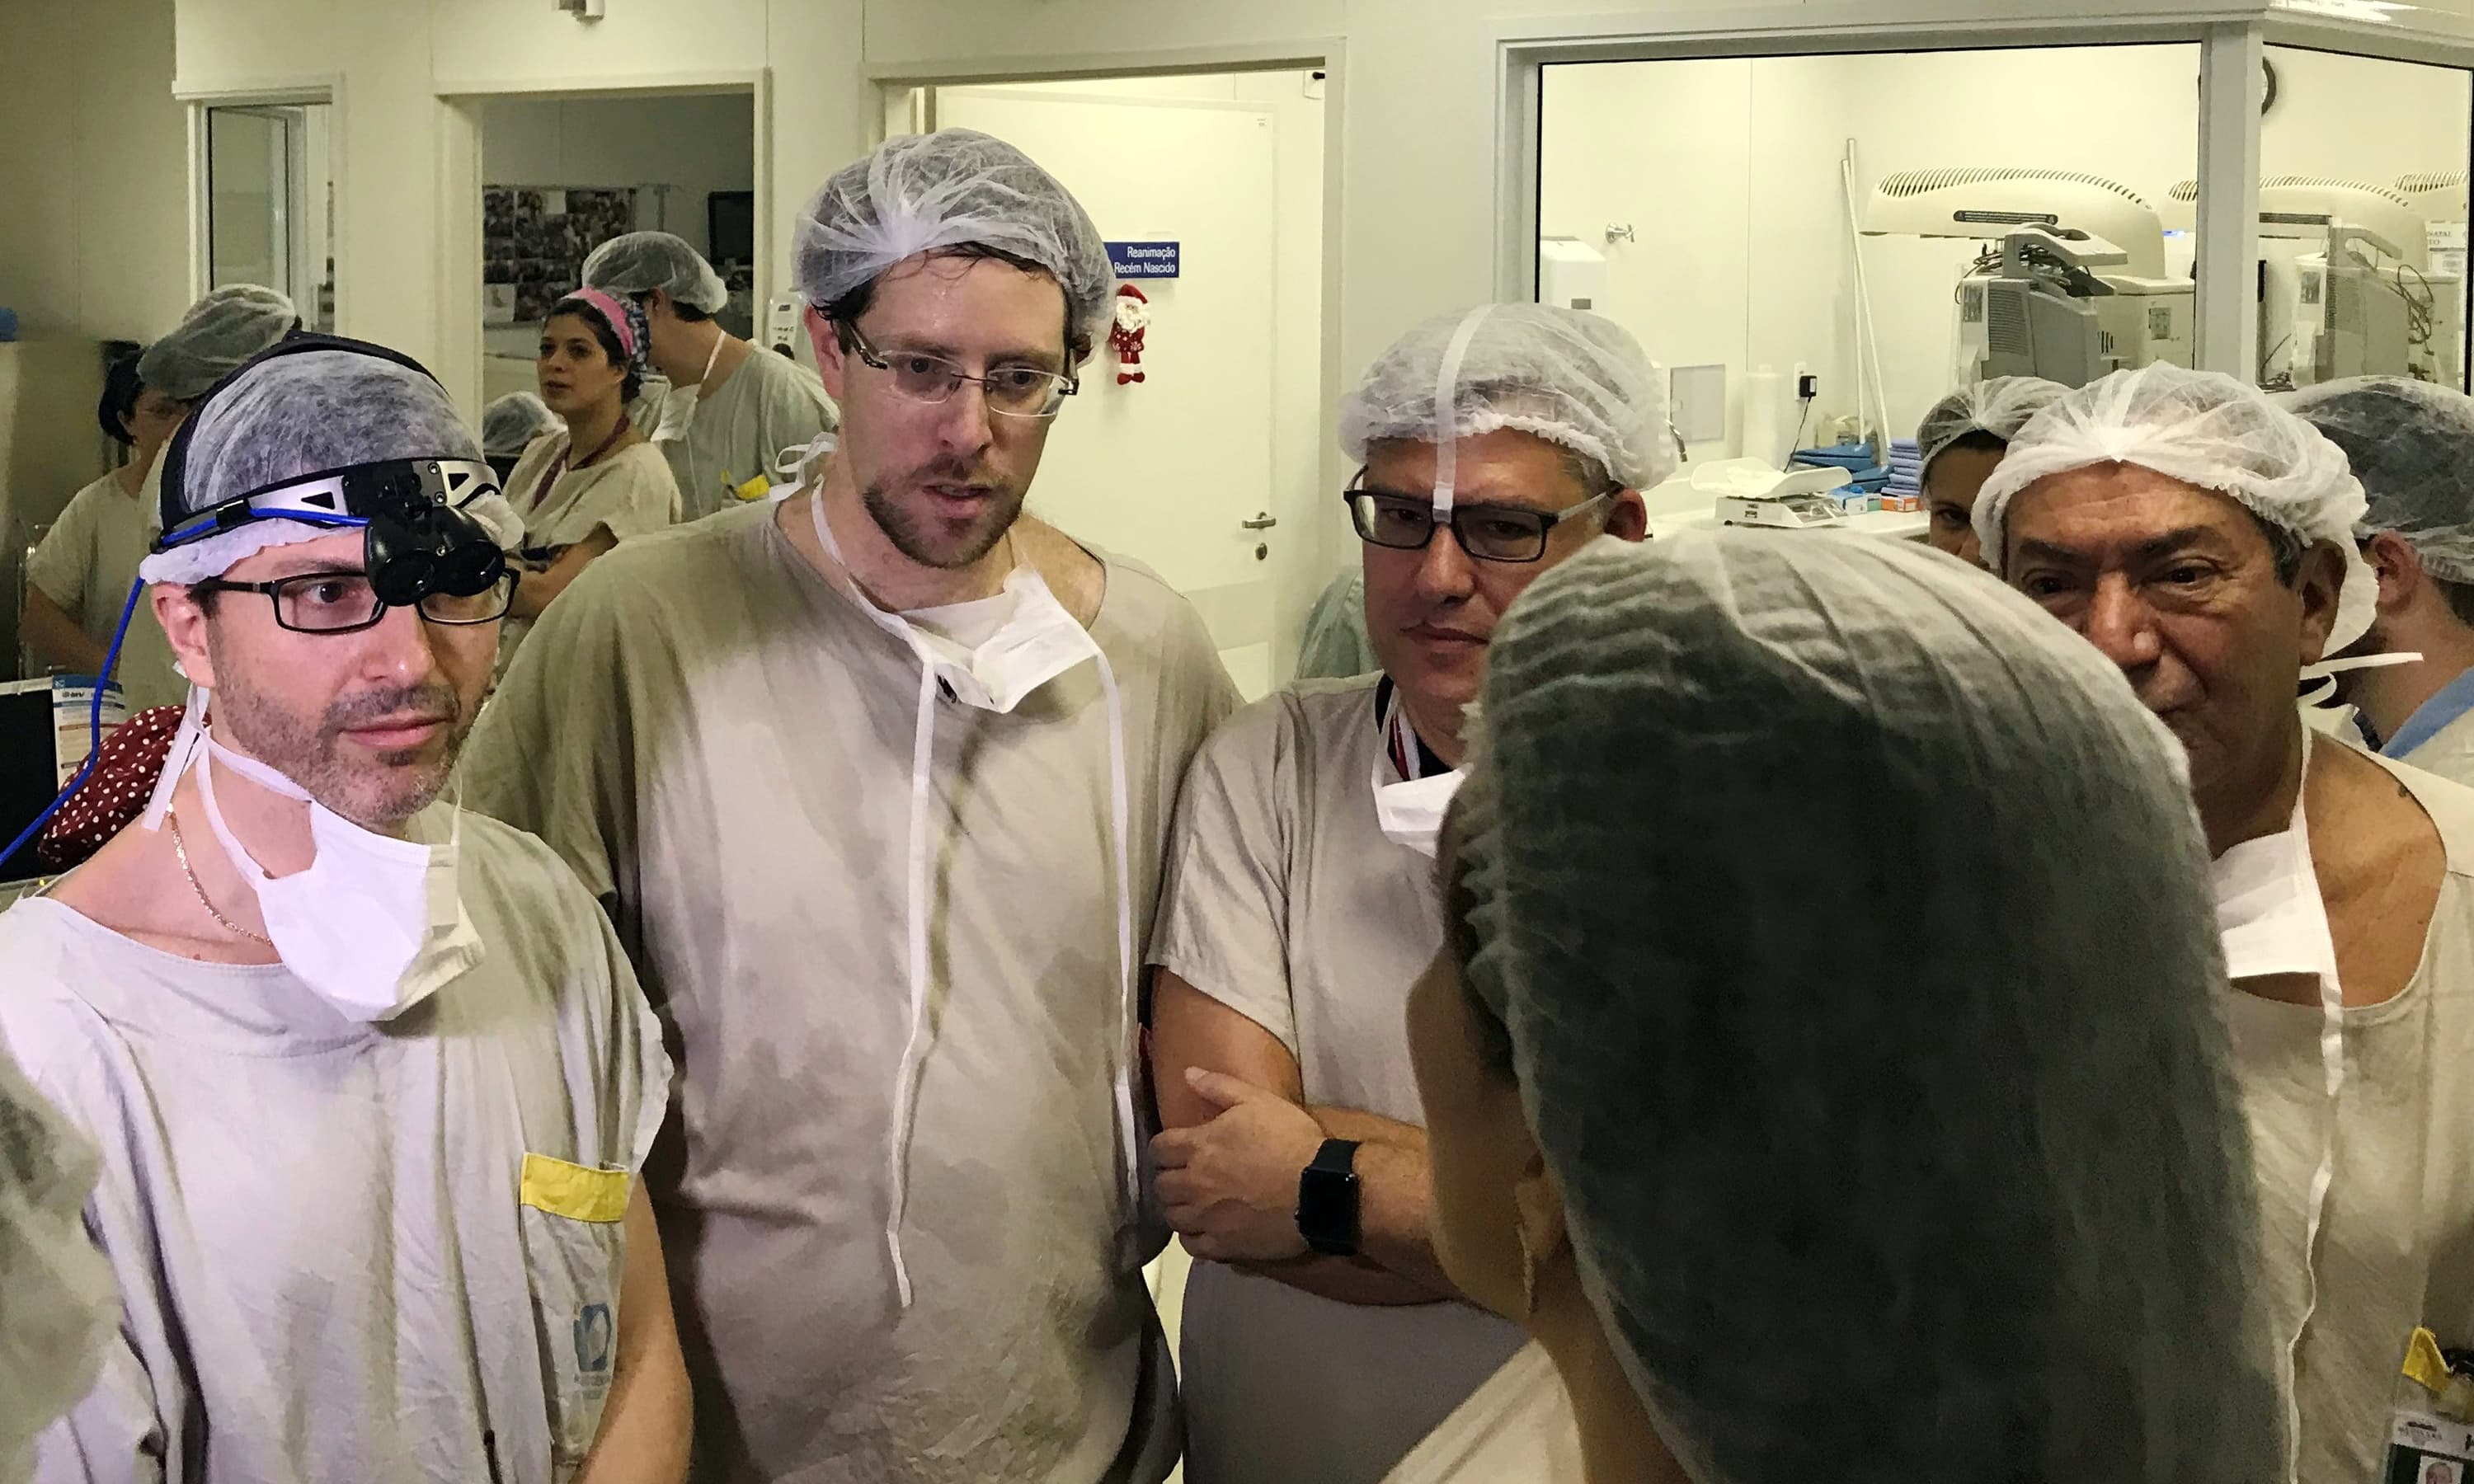 In this Dec 15, 2017, photo provided by transplant surgeon Dr. Wellington Andraus, left with magnifying glasses, he and Dr Dani Ejzenberg, second left, confer with colleagues at the hospital. —AP